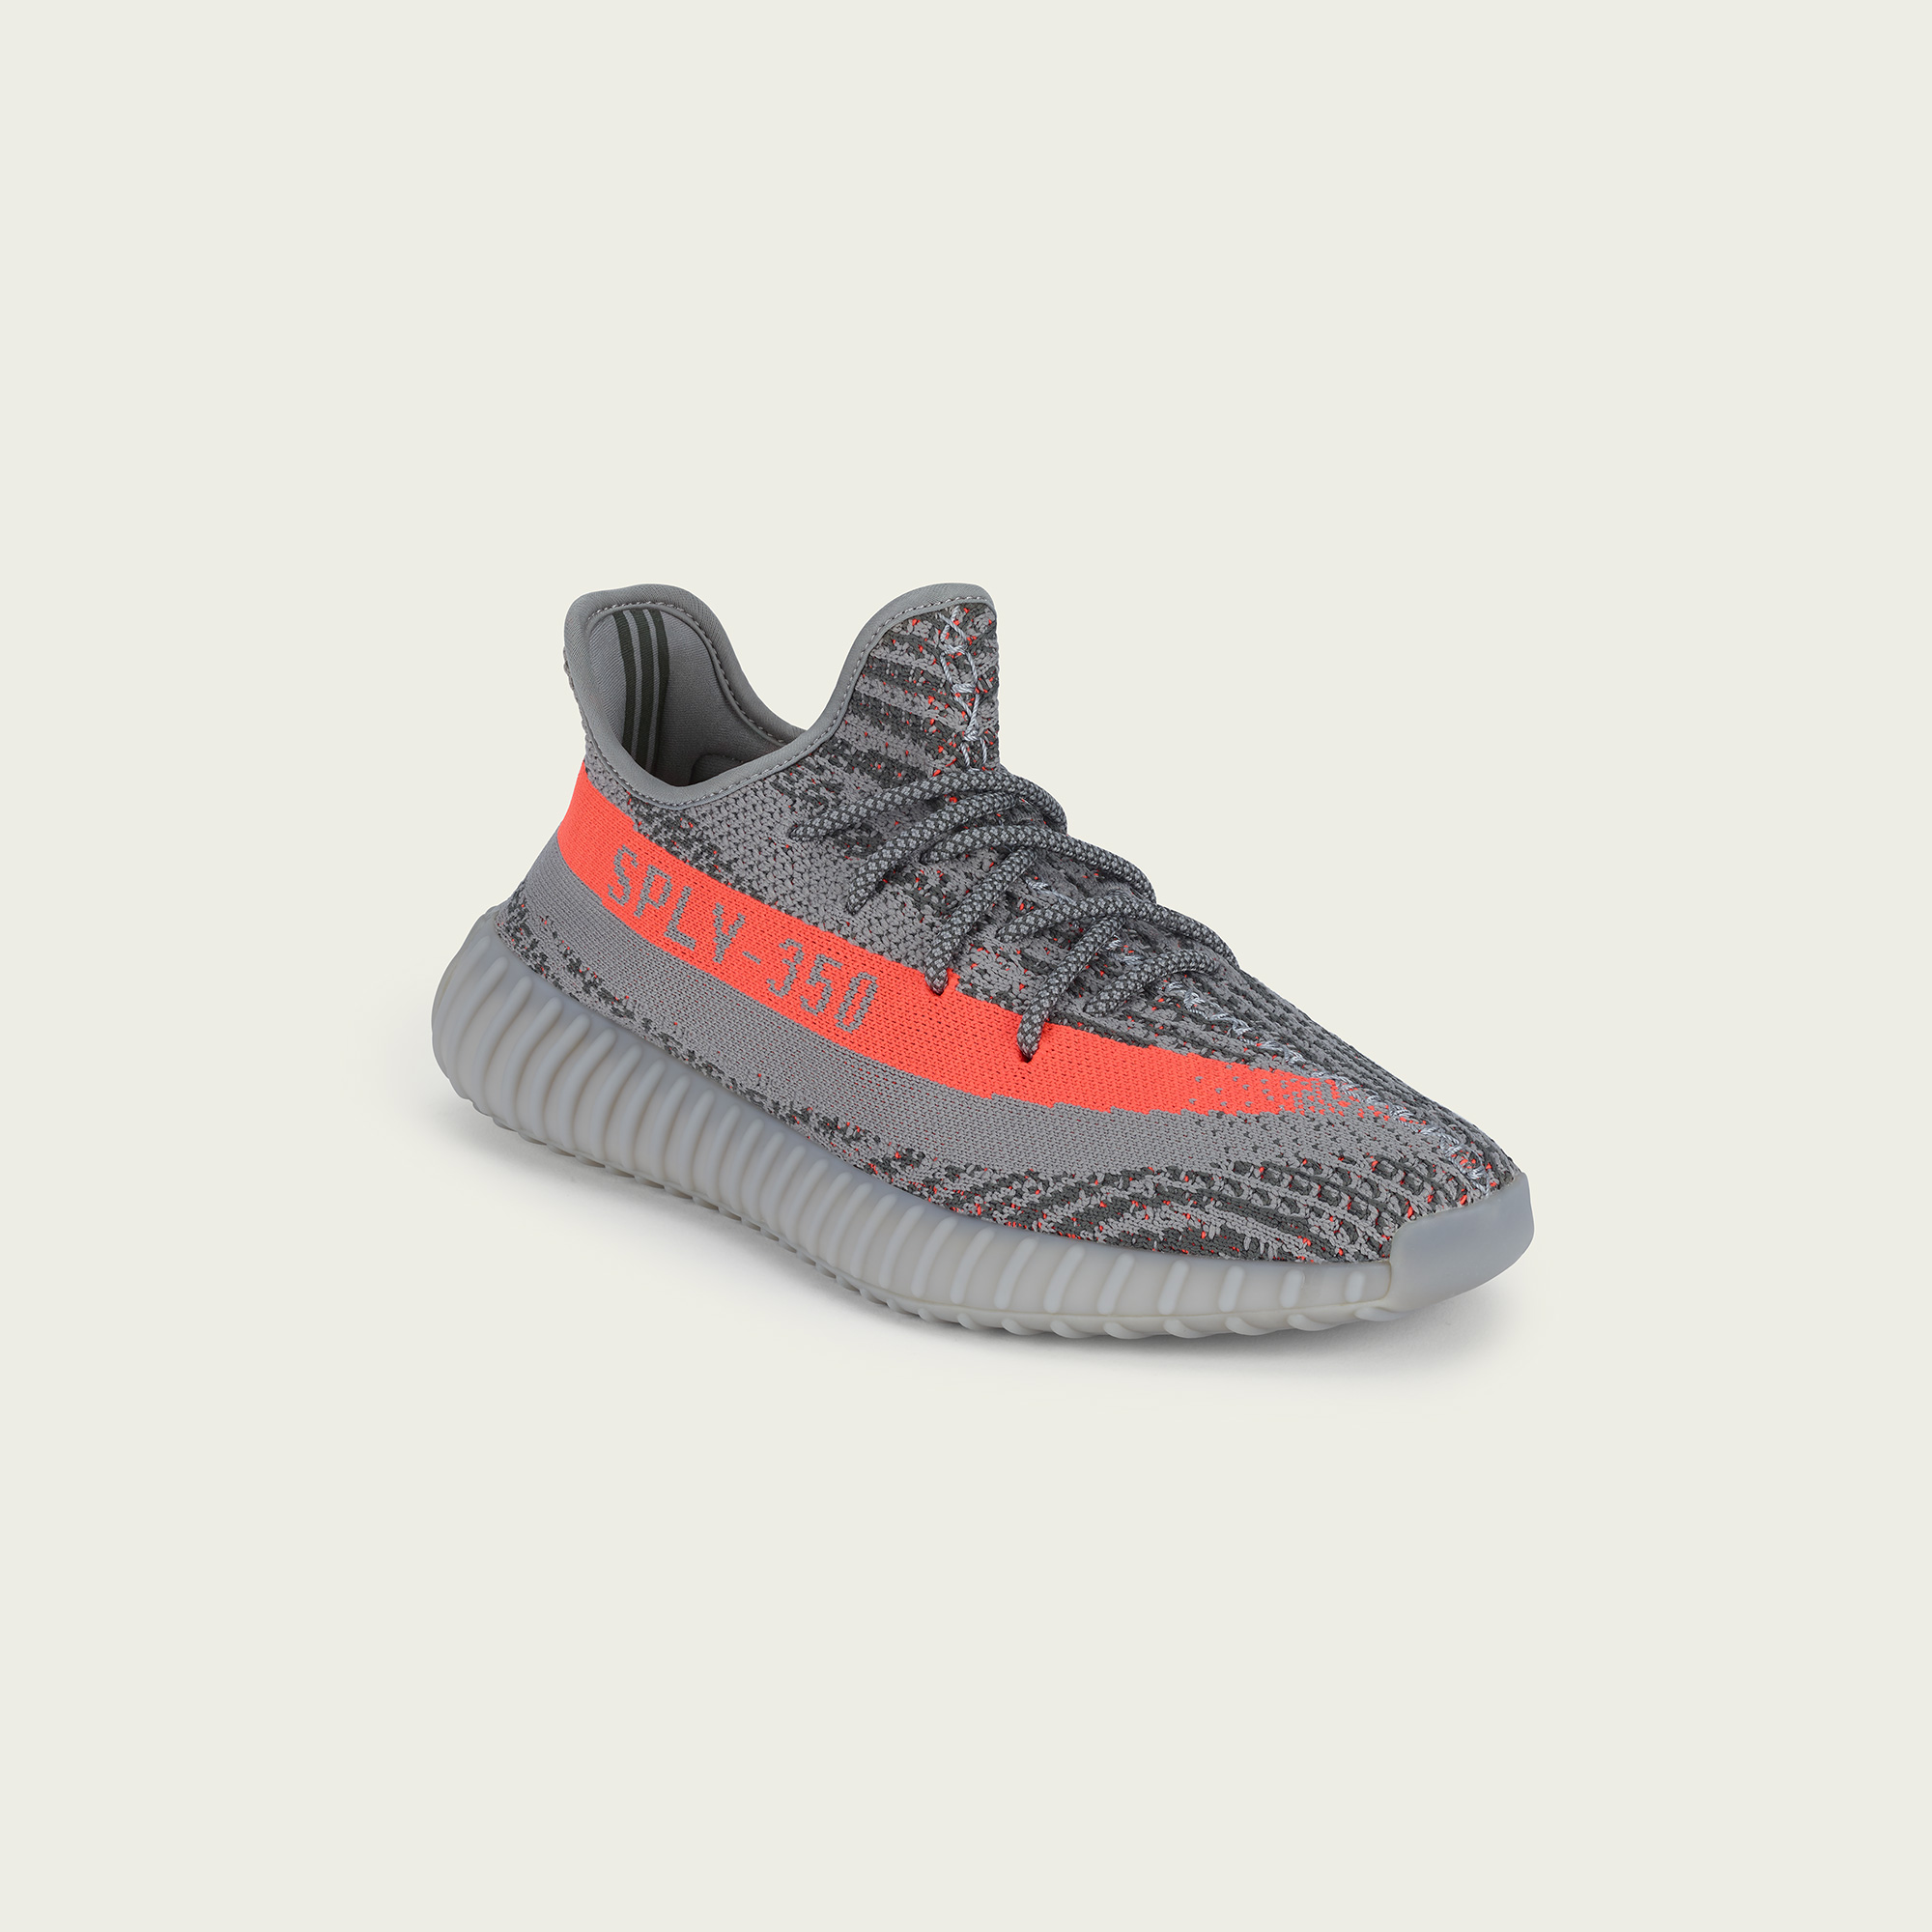 hot sale online 59a6e 356a7 Yeezy Boost 350 V2